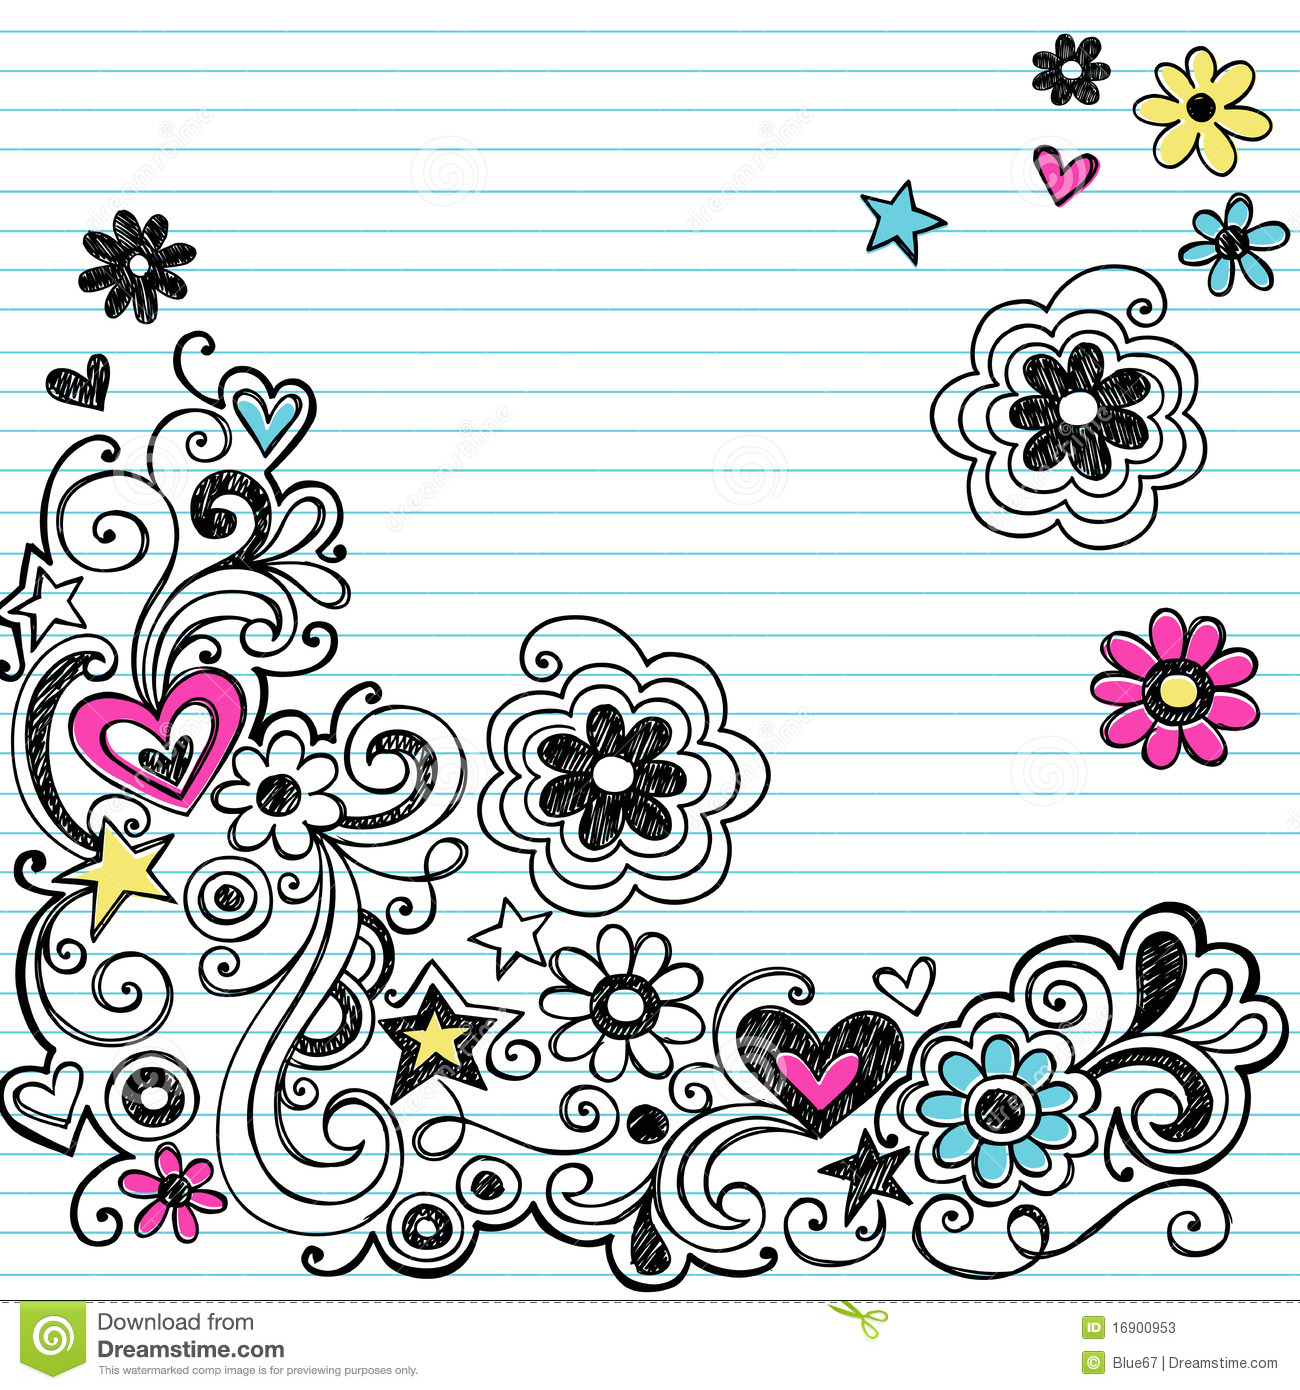 Hand drawn Marker Ink Notebook Doodles Border With Flowers And Swirls